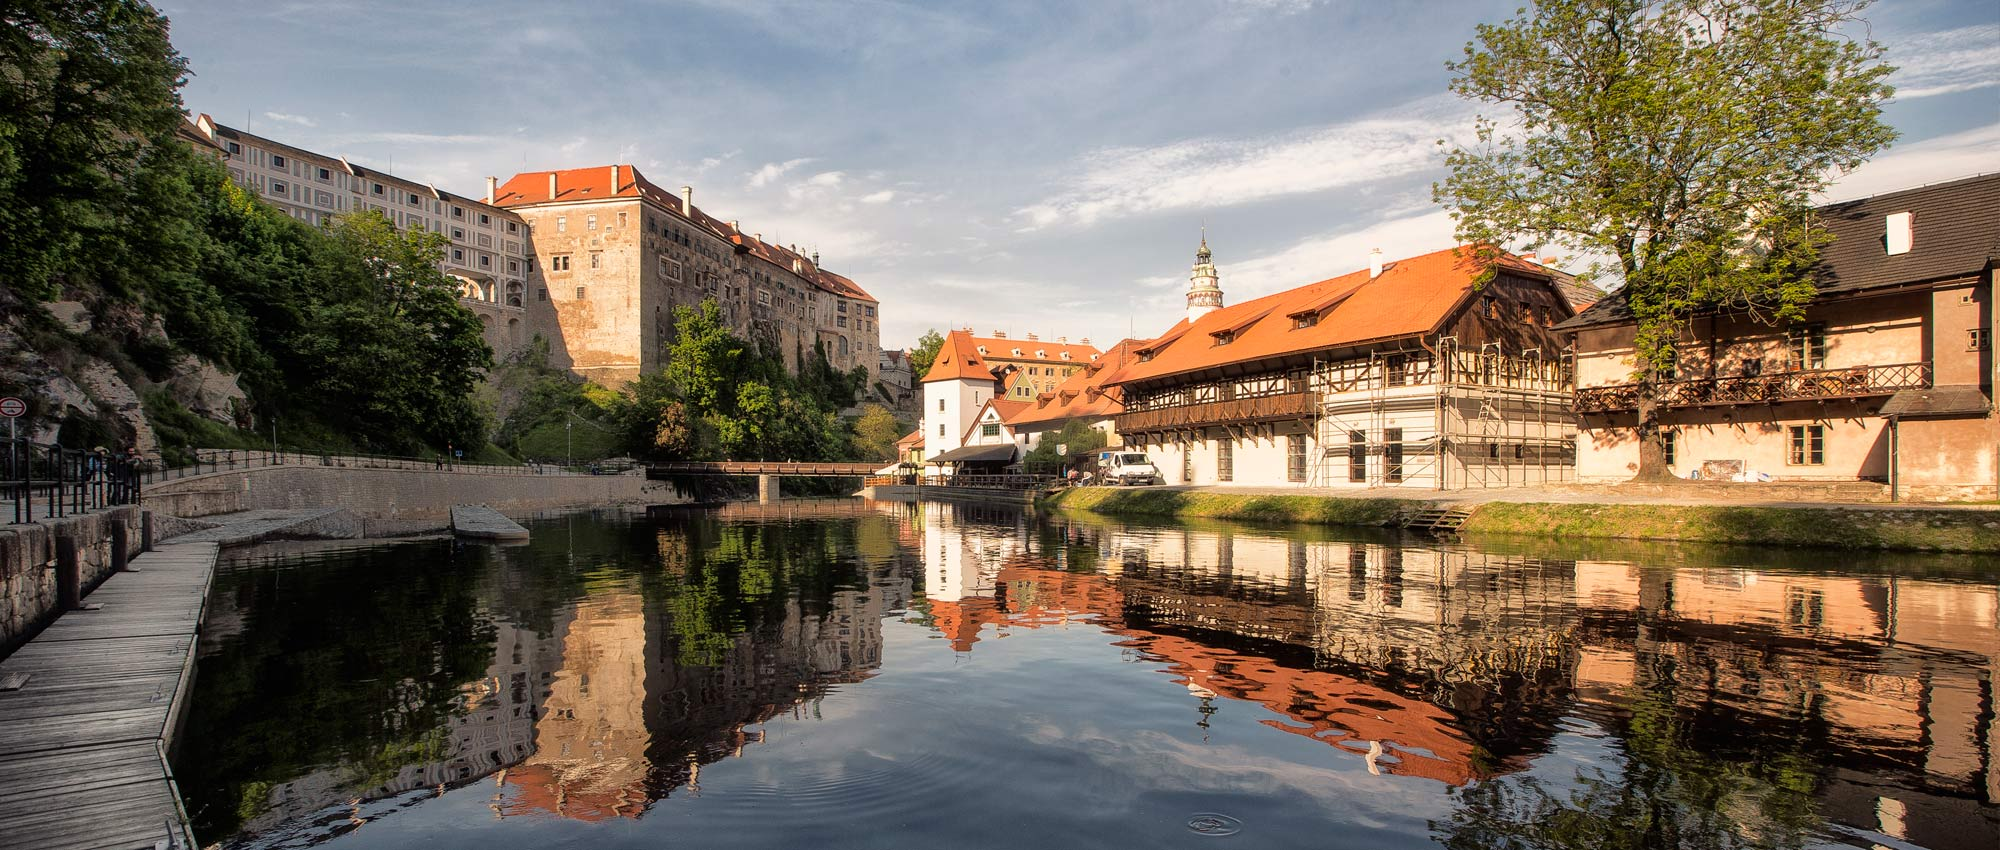 Cesky Krumlov and South Bohemia Photo tour is a photography workshop for all levels organized by Inscape Photo Tours, Czech Republic